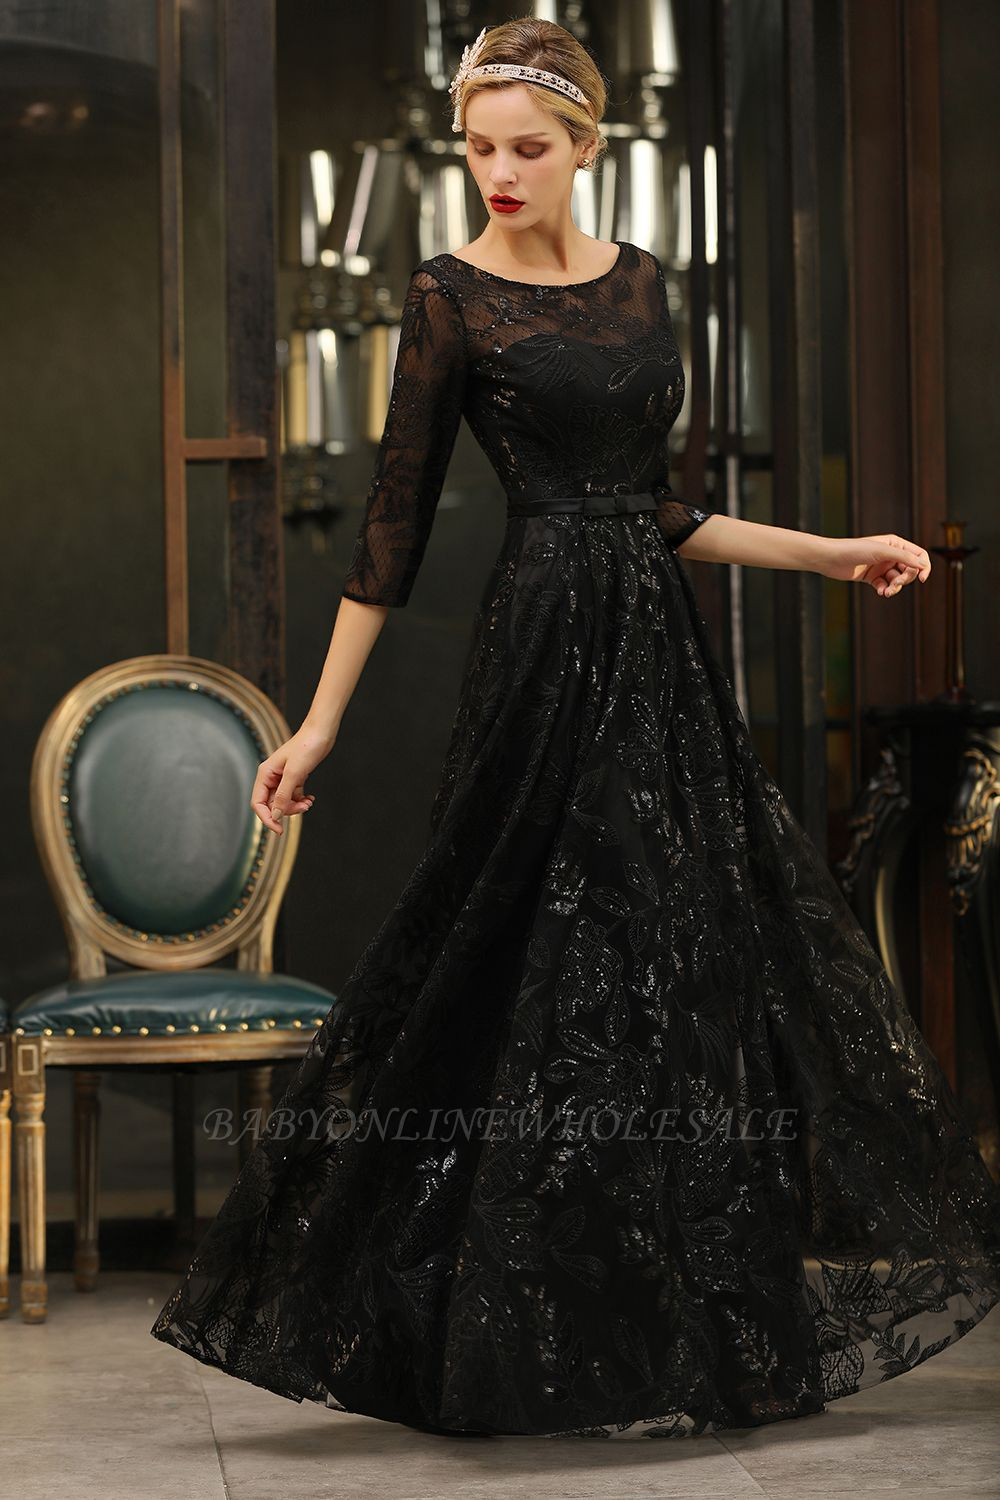 Acacia | Scoop neck Long Sleeves Black Prom Dresses with Sparkly Floral Designs